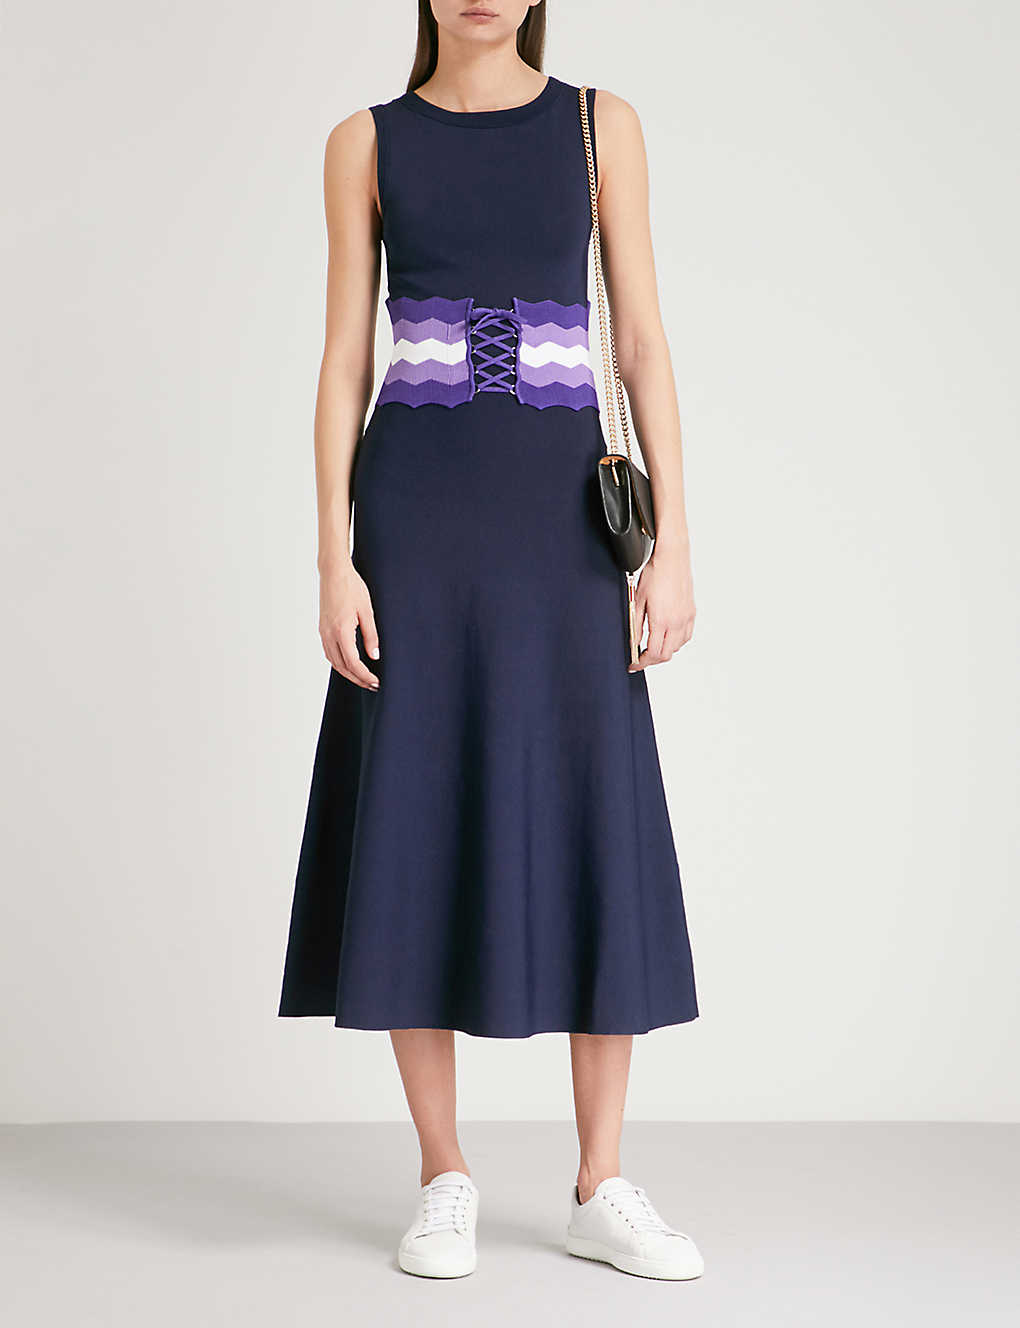 7454590f0 SANDRO - Belted stretch-knit midi dress | Selfridges.com